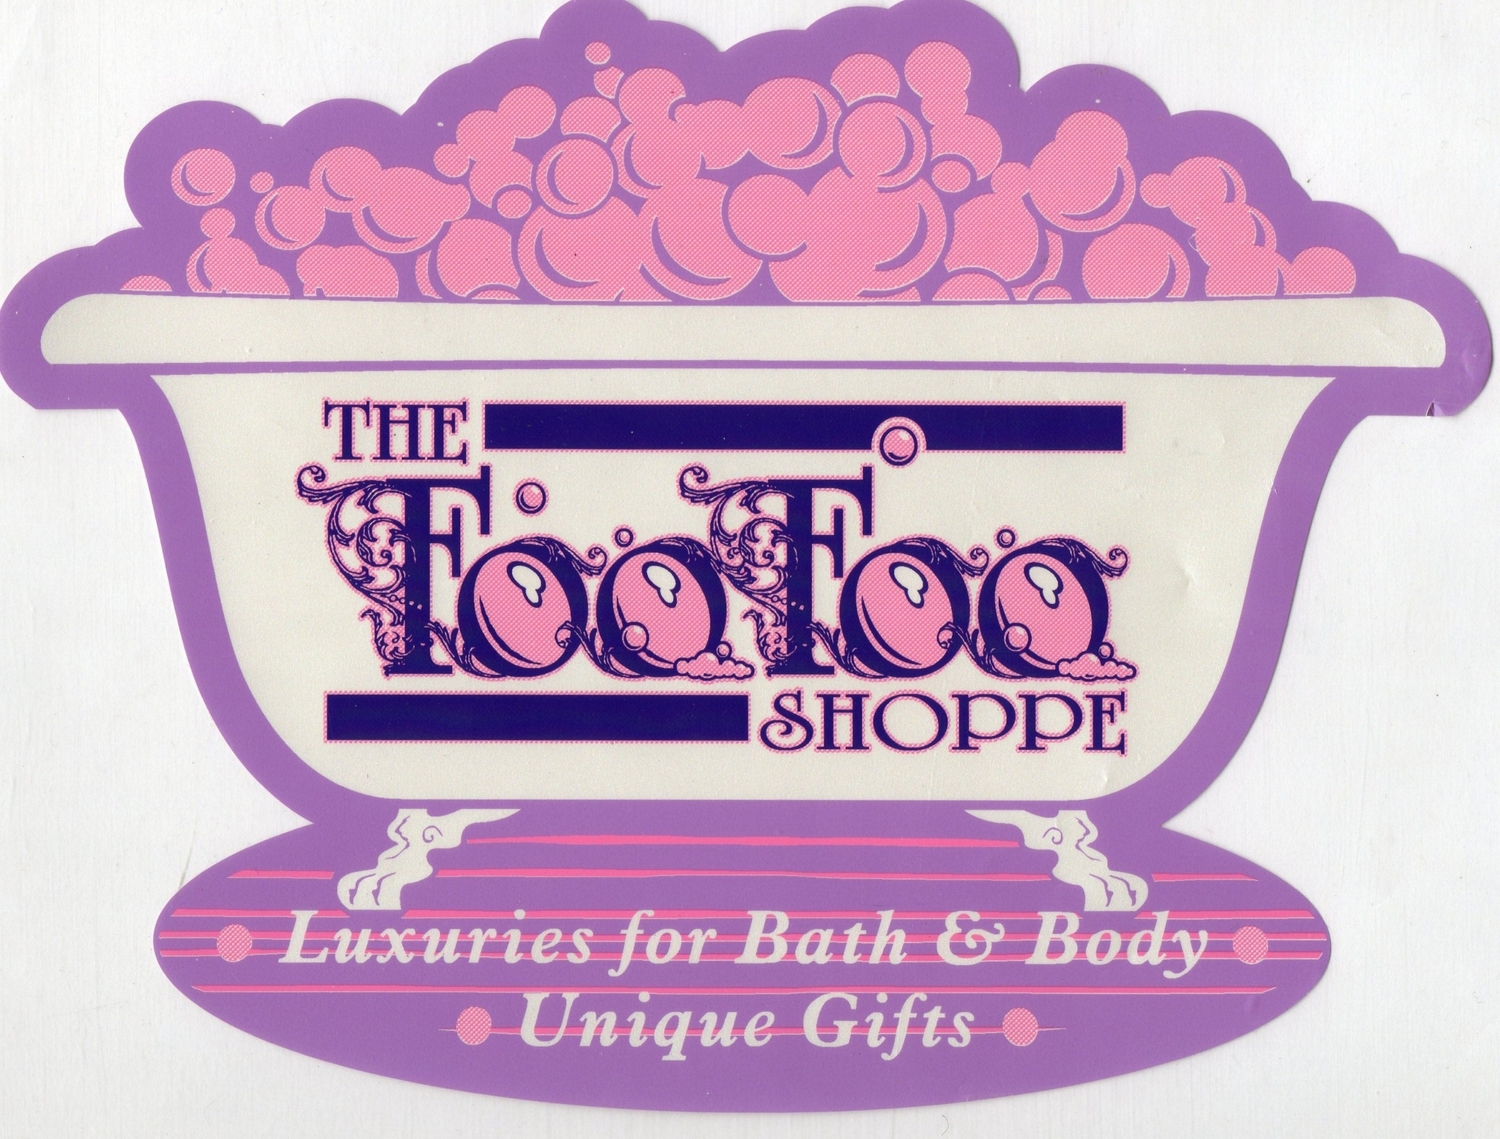 Welcome to The Foo Foo Shoppe